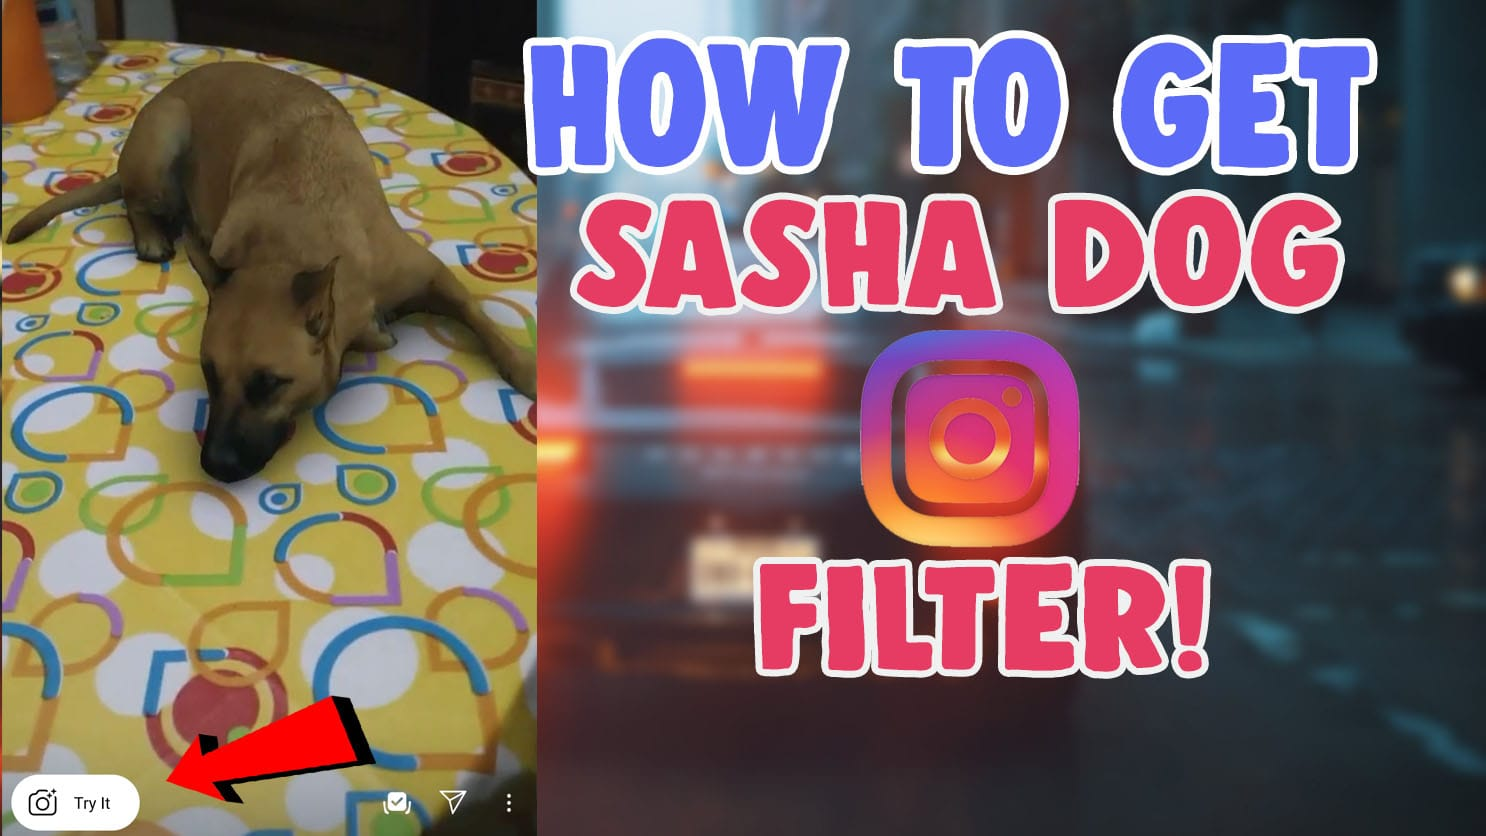 sasha dog filter instagram